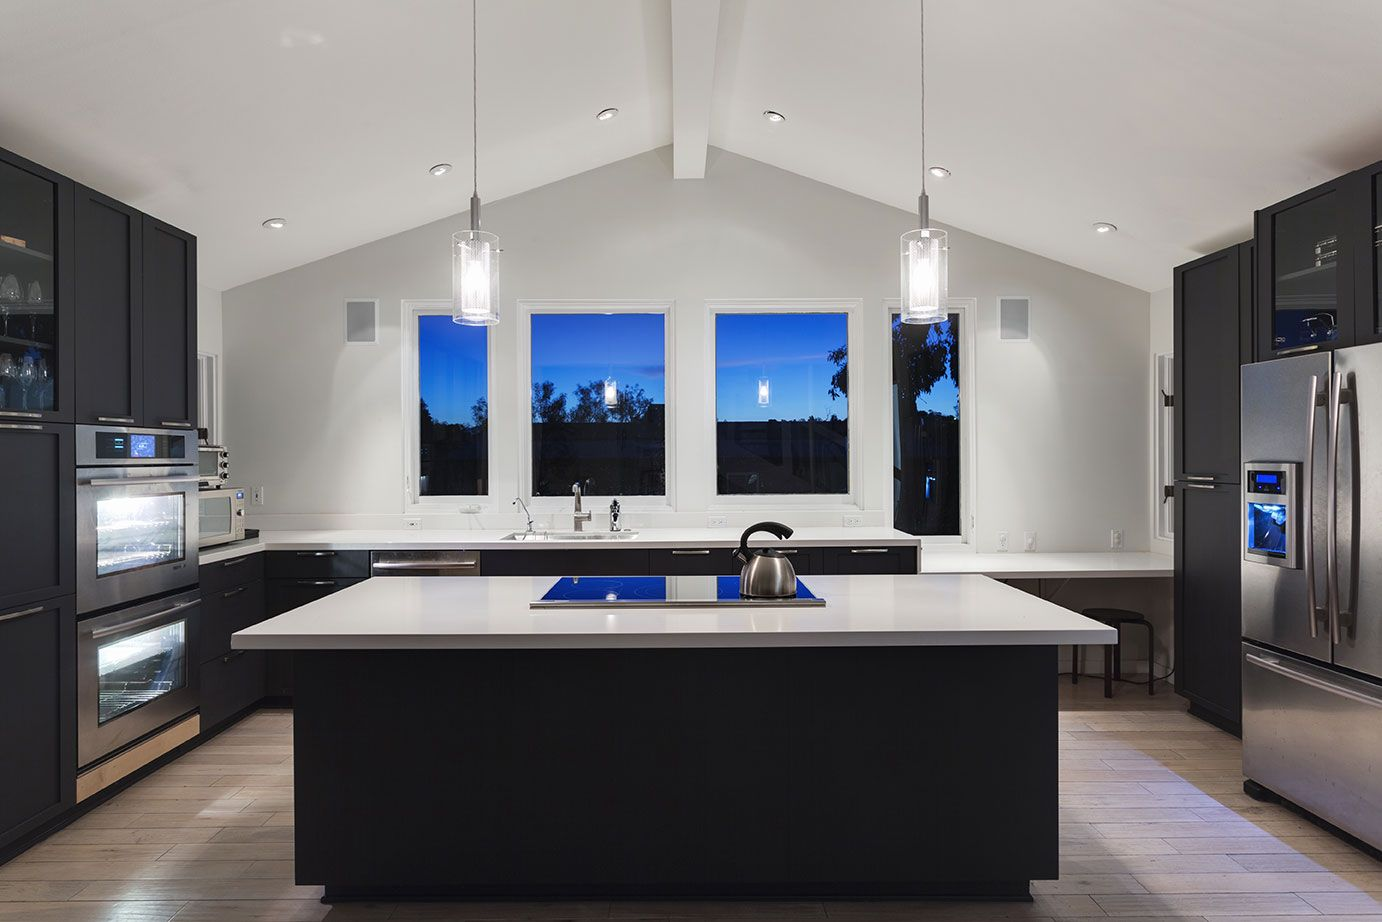 impact remodeling is the top phoenix kitchen remodeling experts of choice known for their no